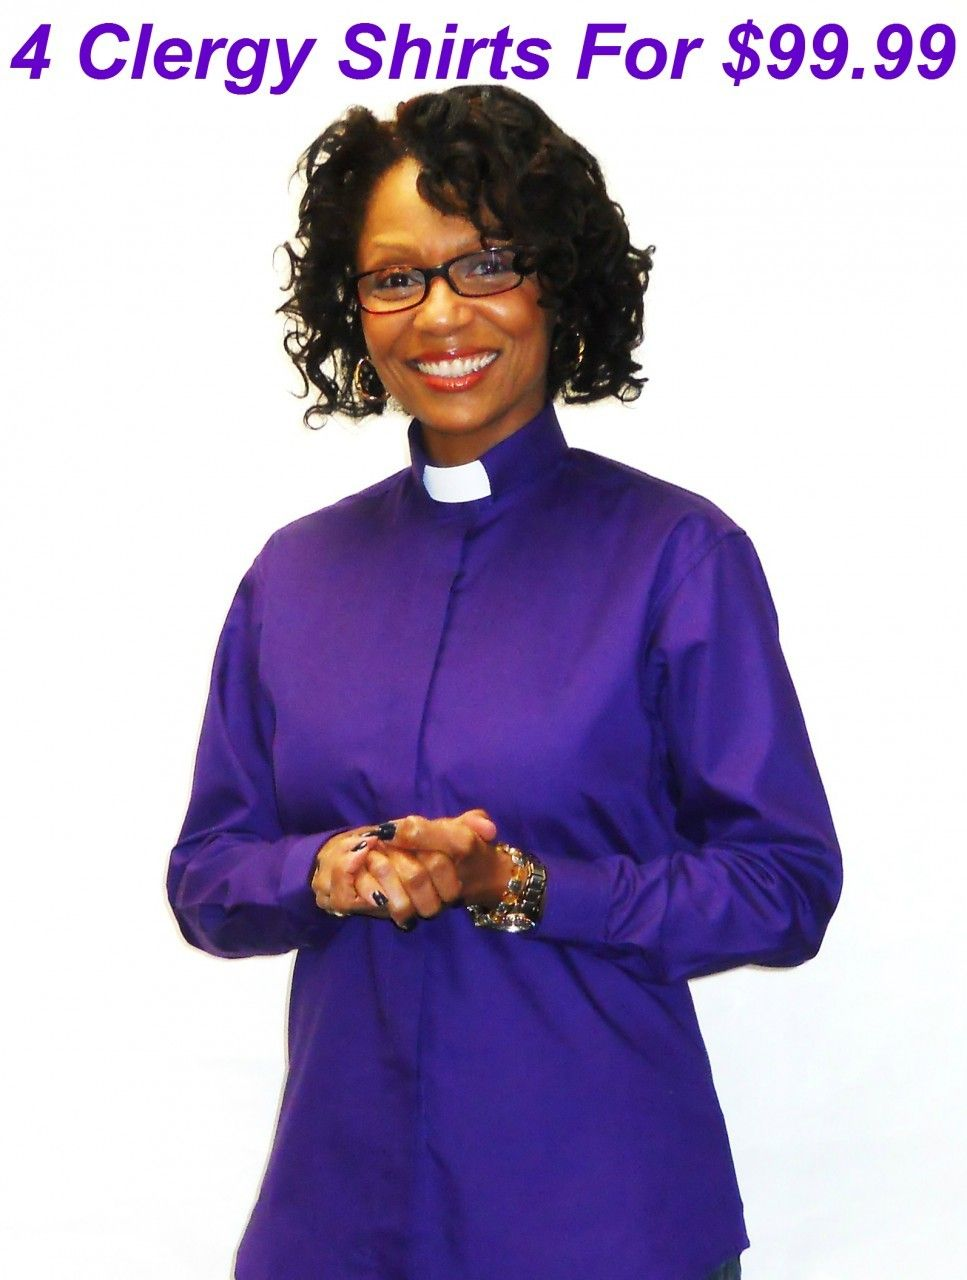 Super Sale 4 Womens Tab Collar Clergy Shirts For 9999 Divinity